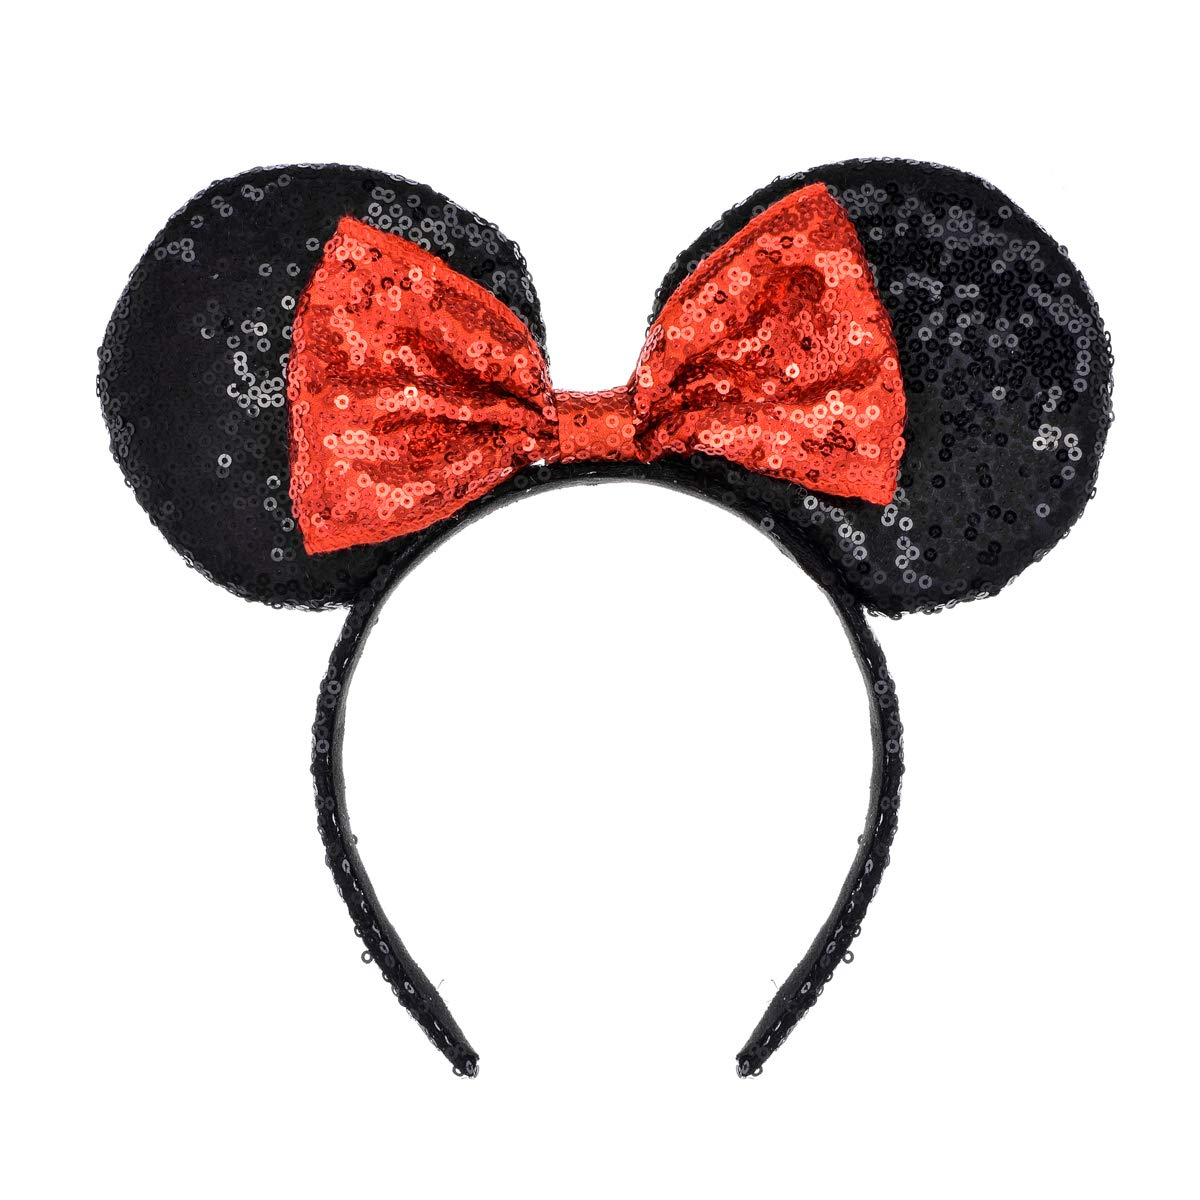 A Miaow Mickey Mouse Sequin Ears Headband Minnie Glitter Hair Clasp Birthday Supply Girls Kids adult (Black and Red) by A Miaow